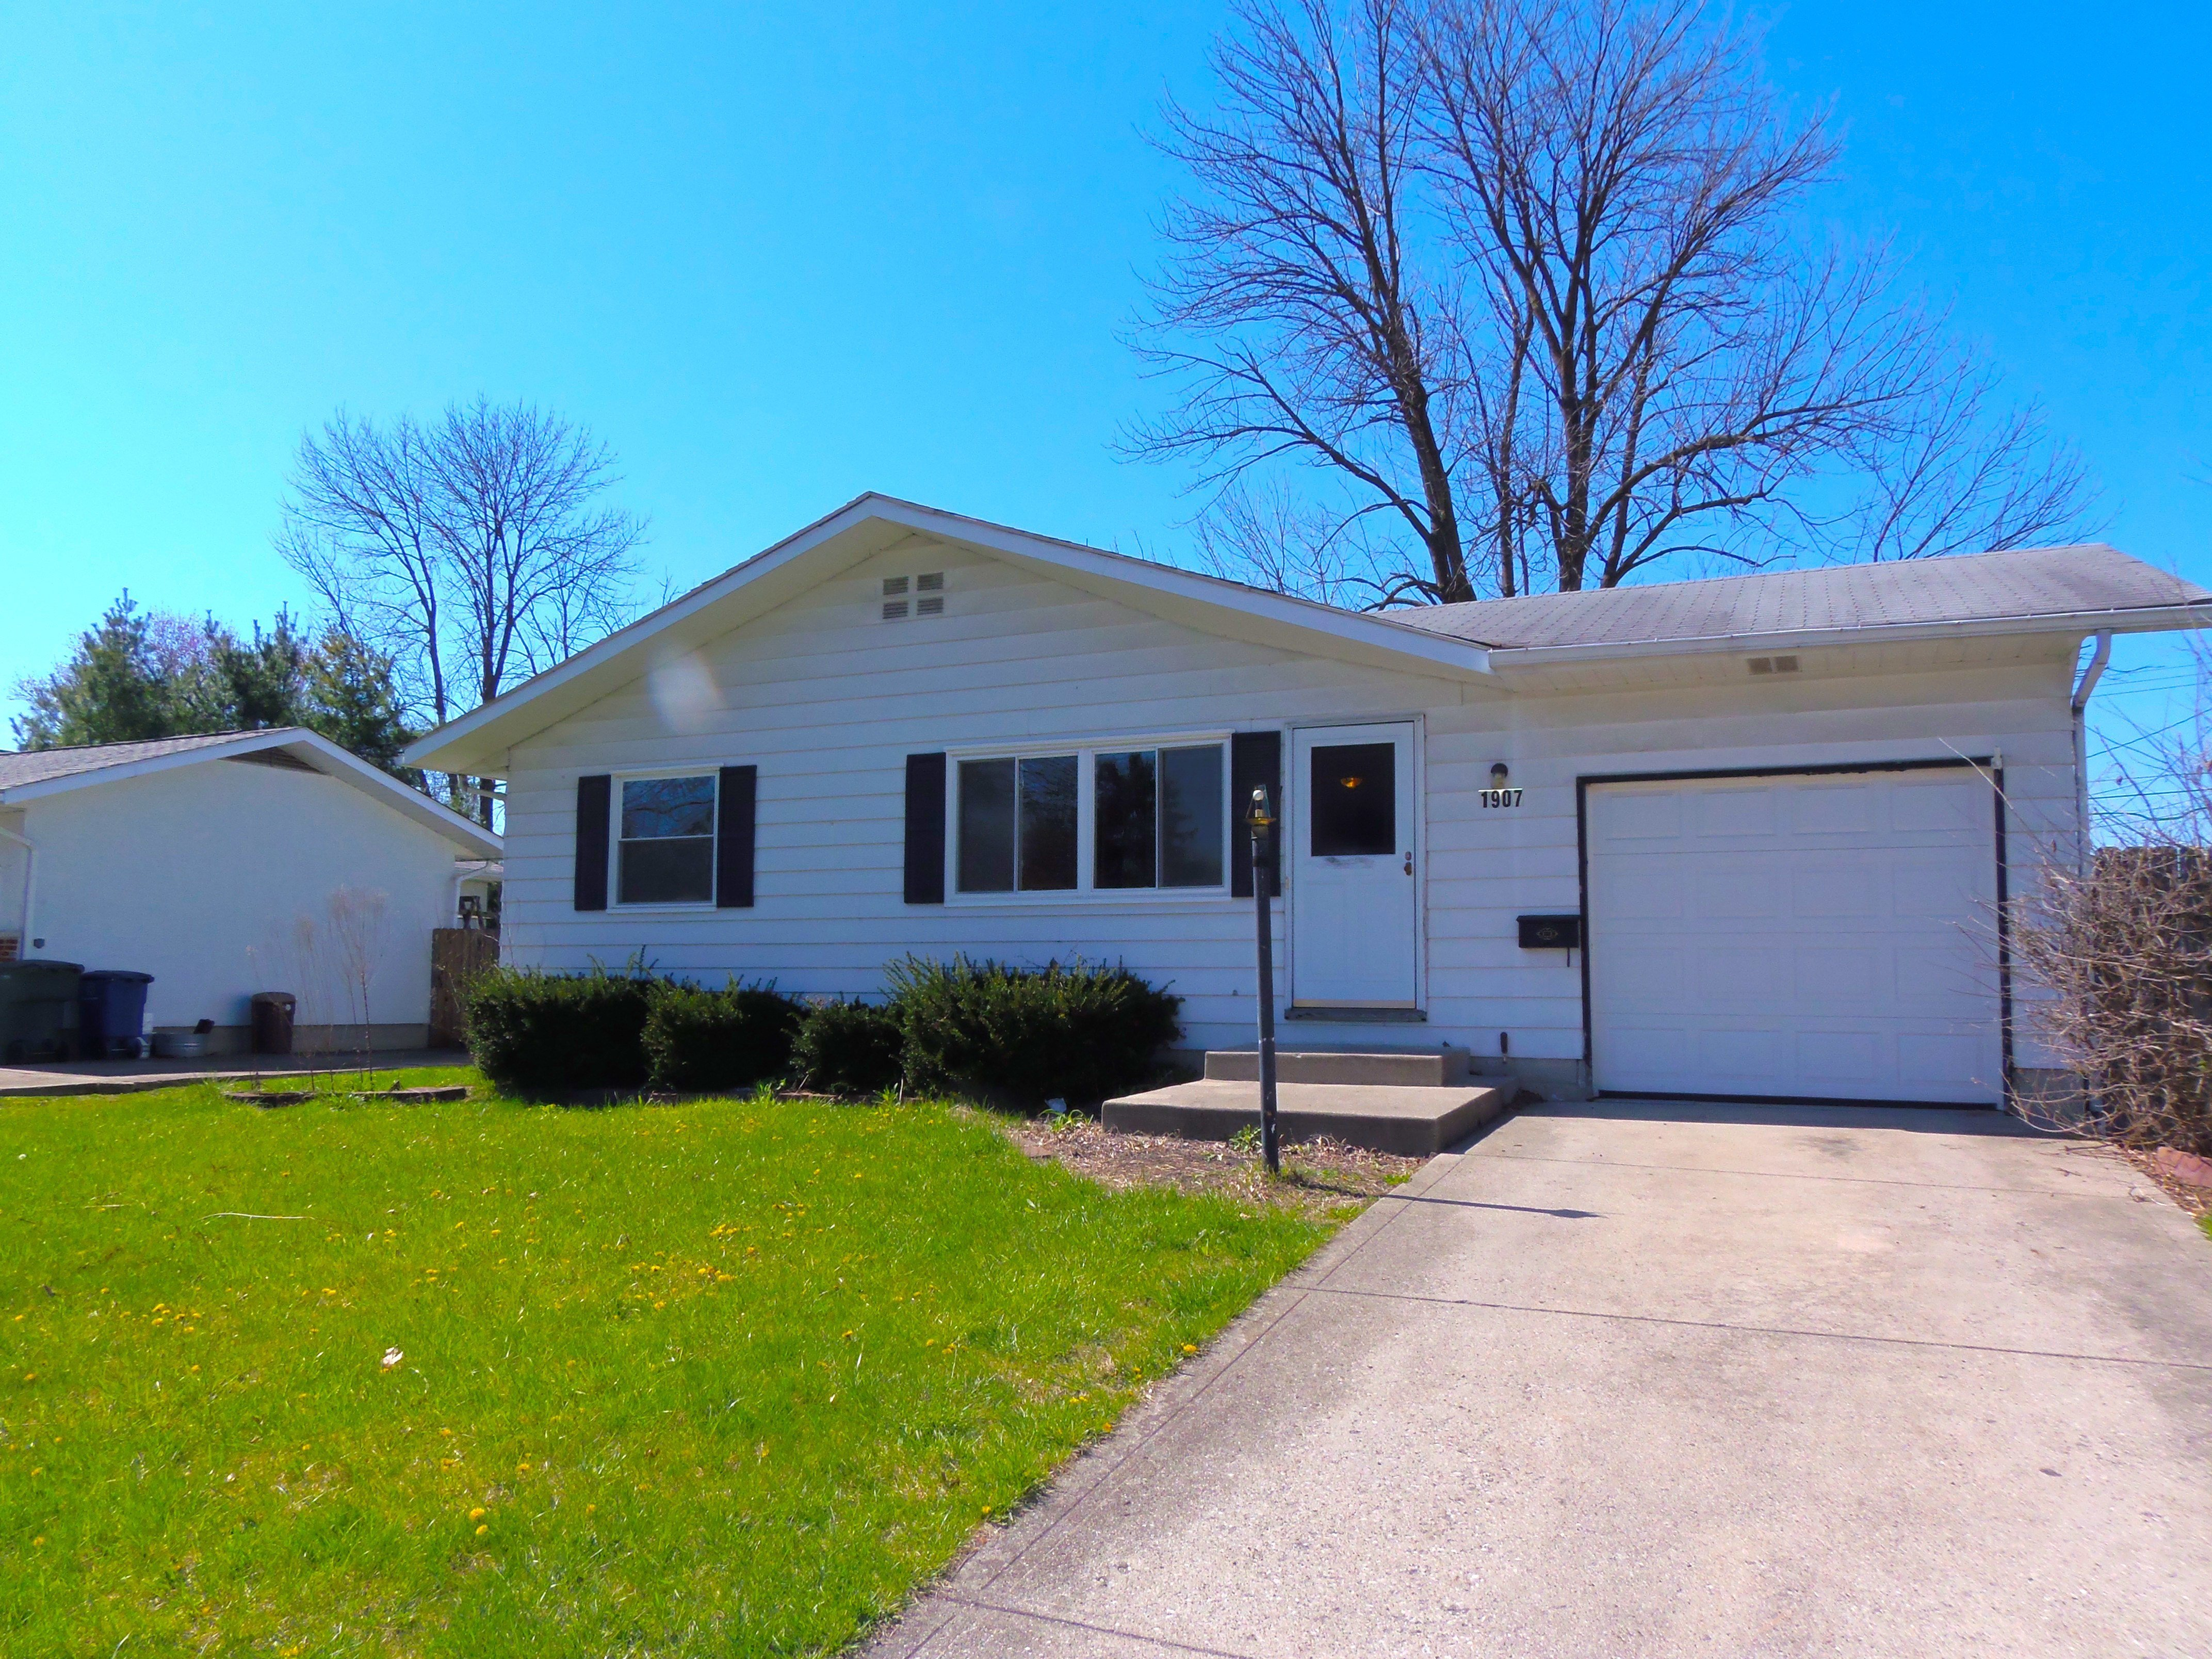 Best East Columbus Ohio Home For Rent » Vip Realty With Pictures